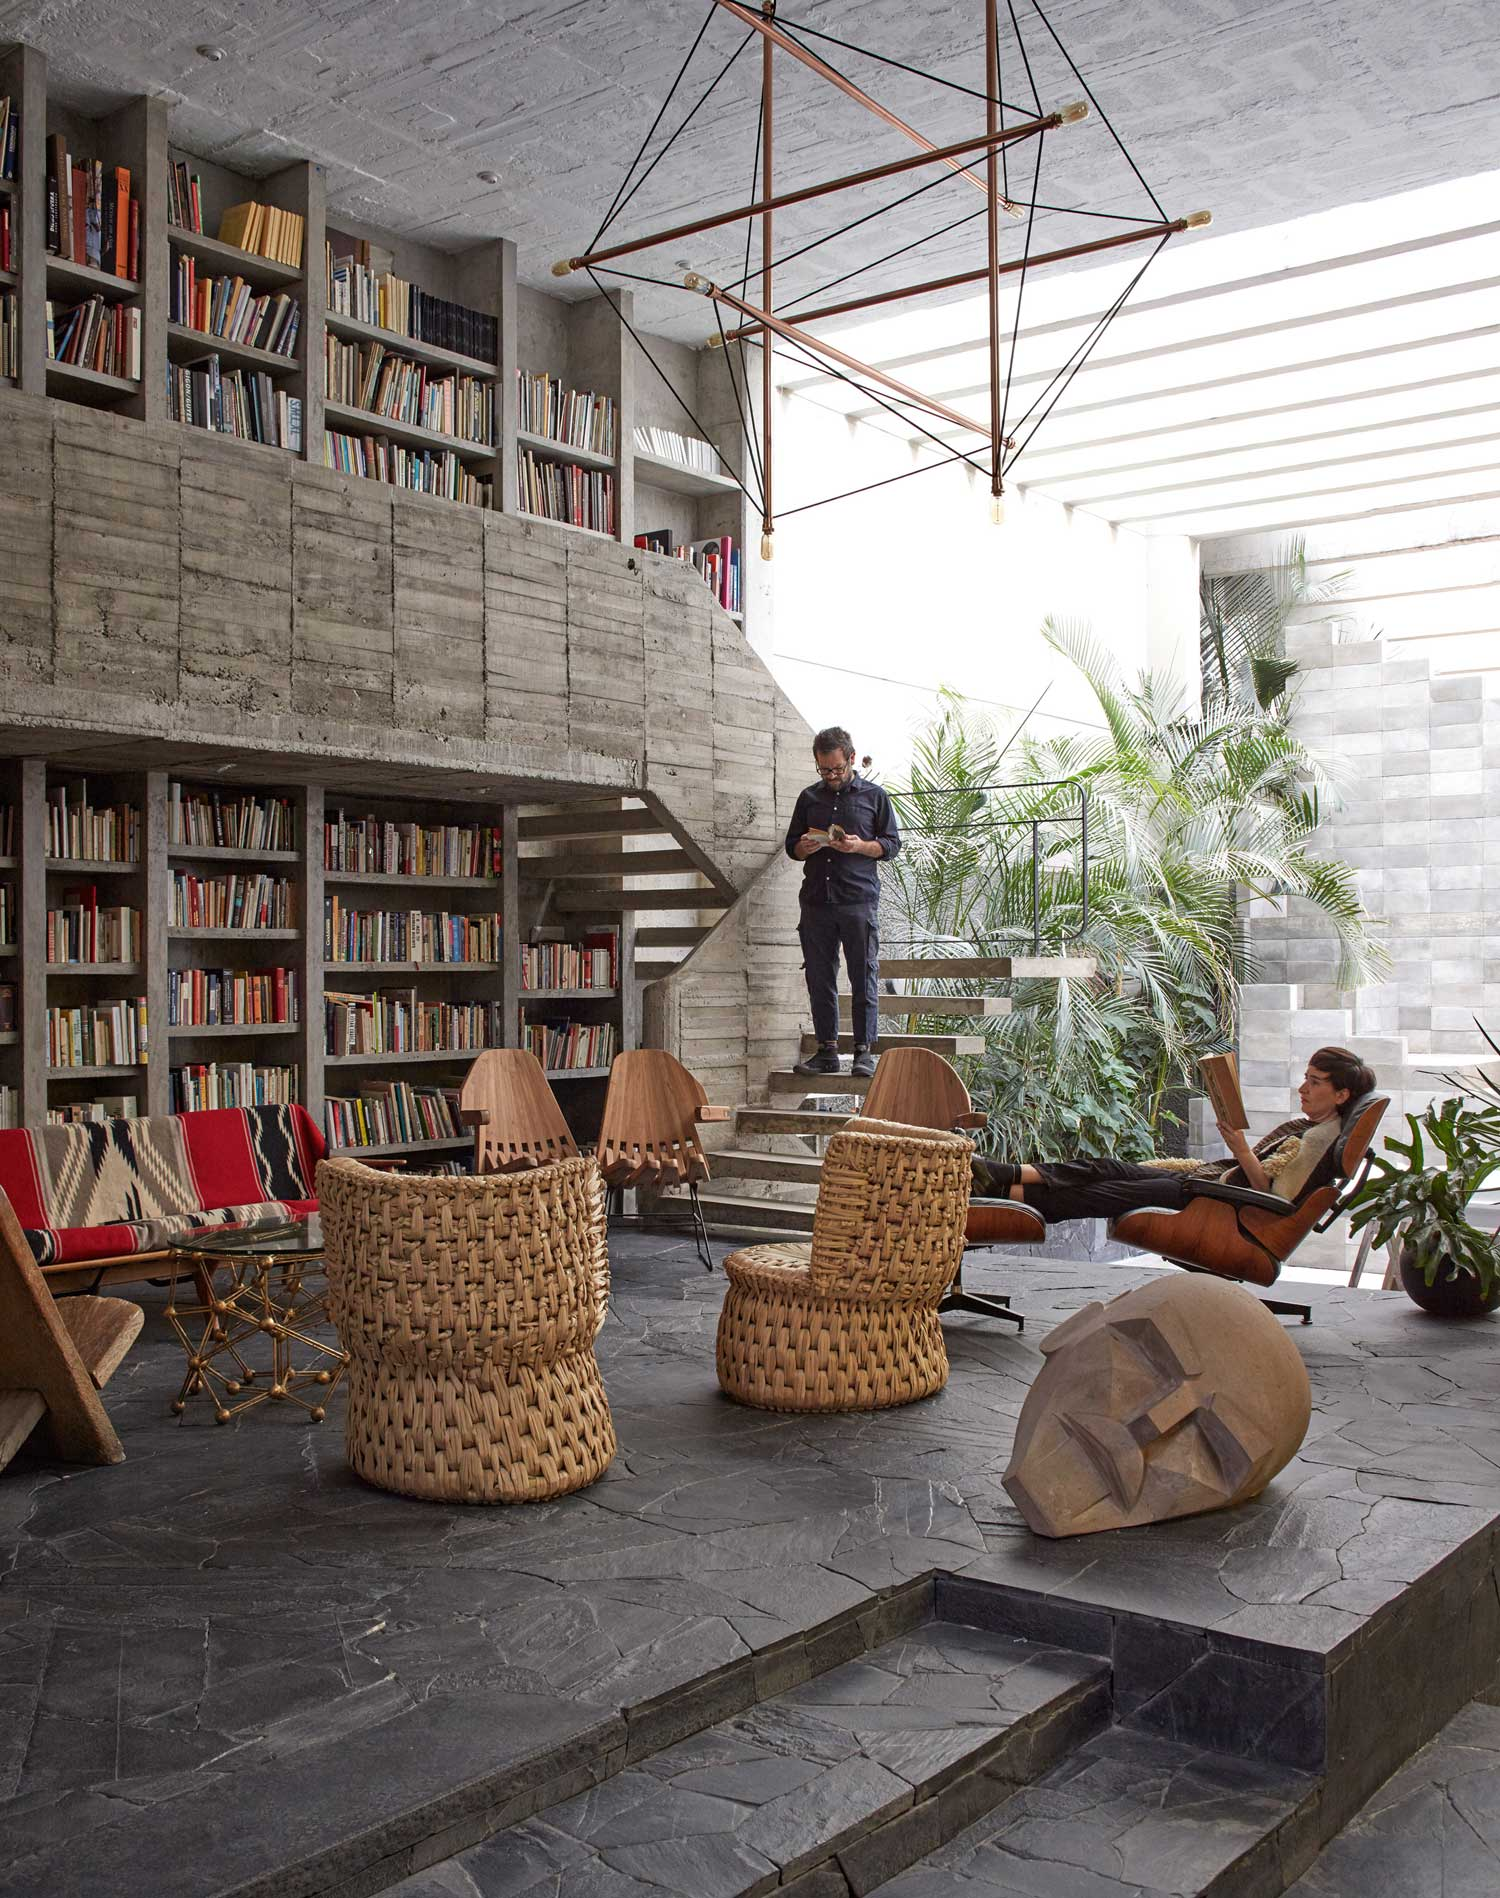 Home & Studio of Mexican Sculptor Pedros Reyes | Yellowtrace